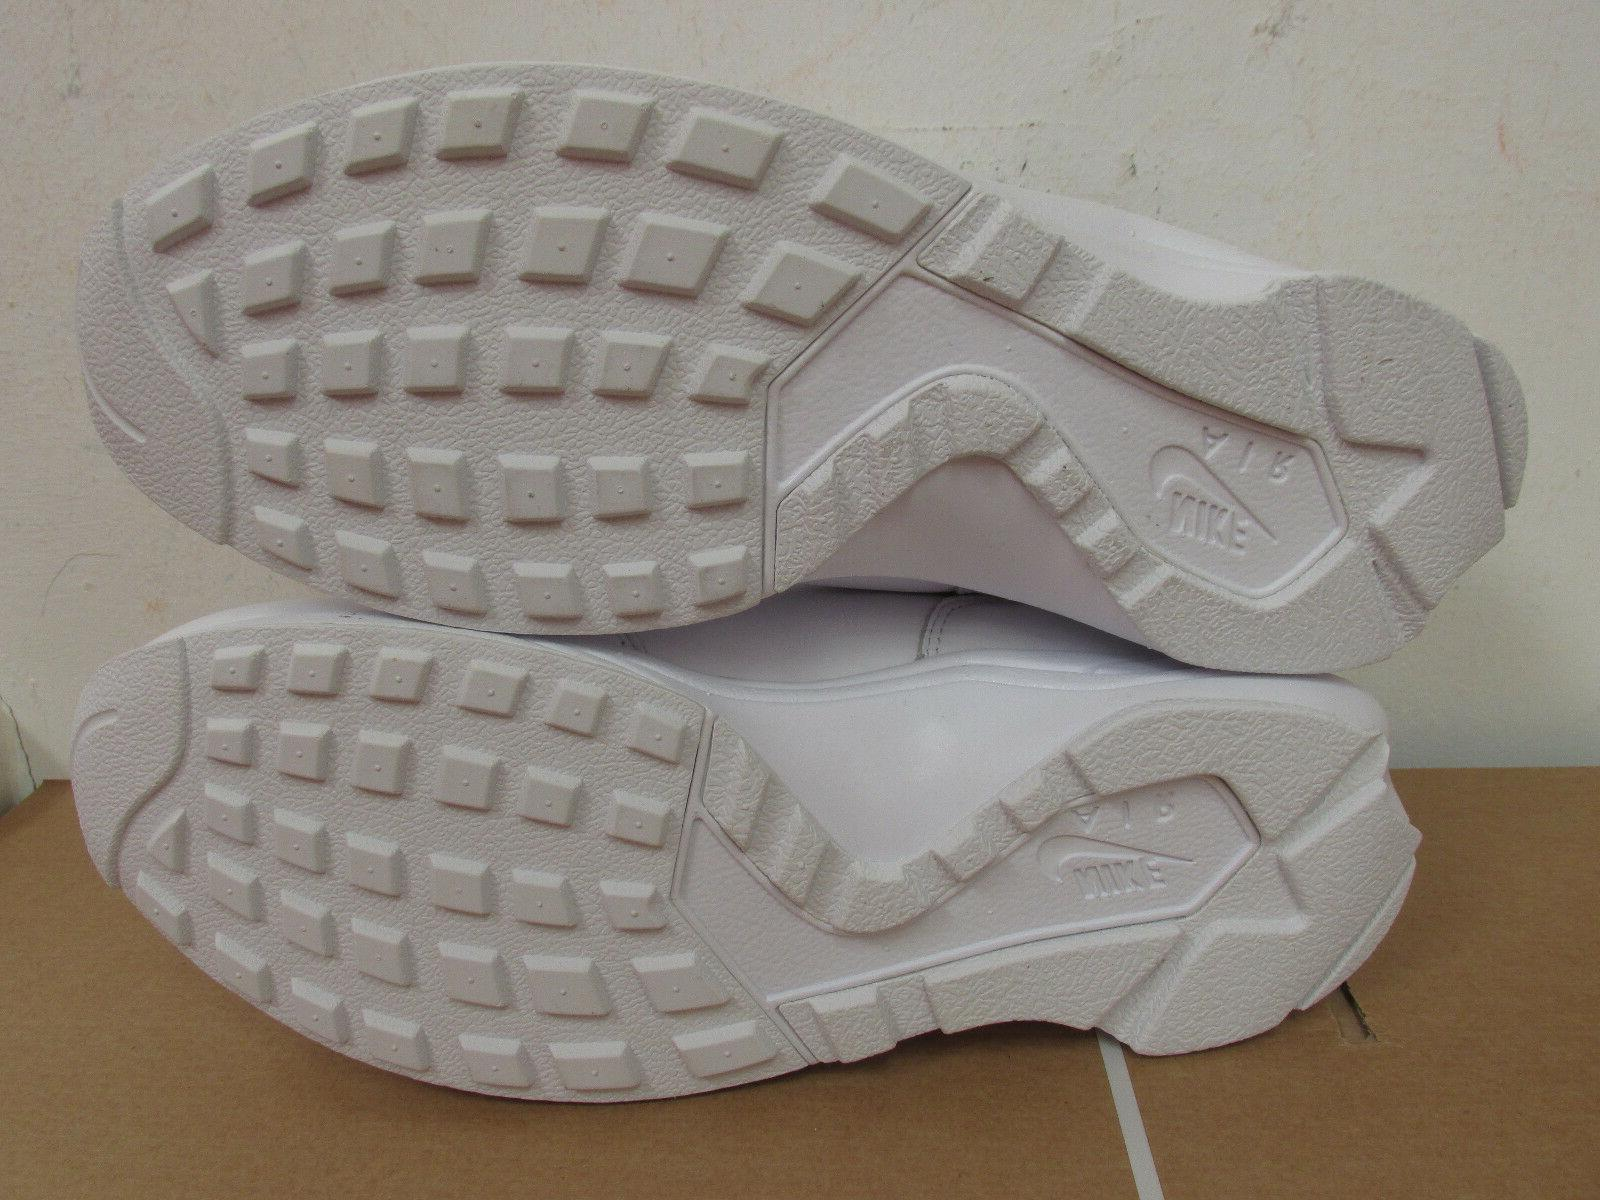 Nike 111 Trainers sneakers shoes